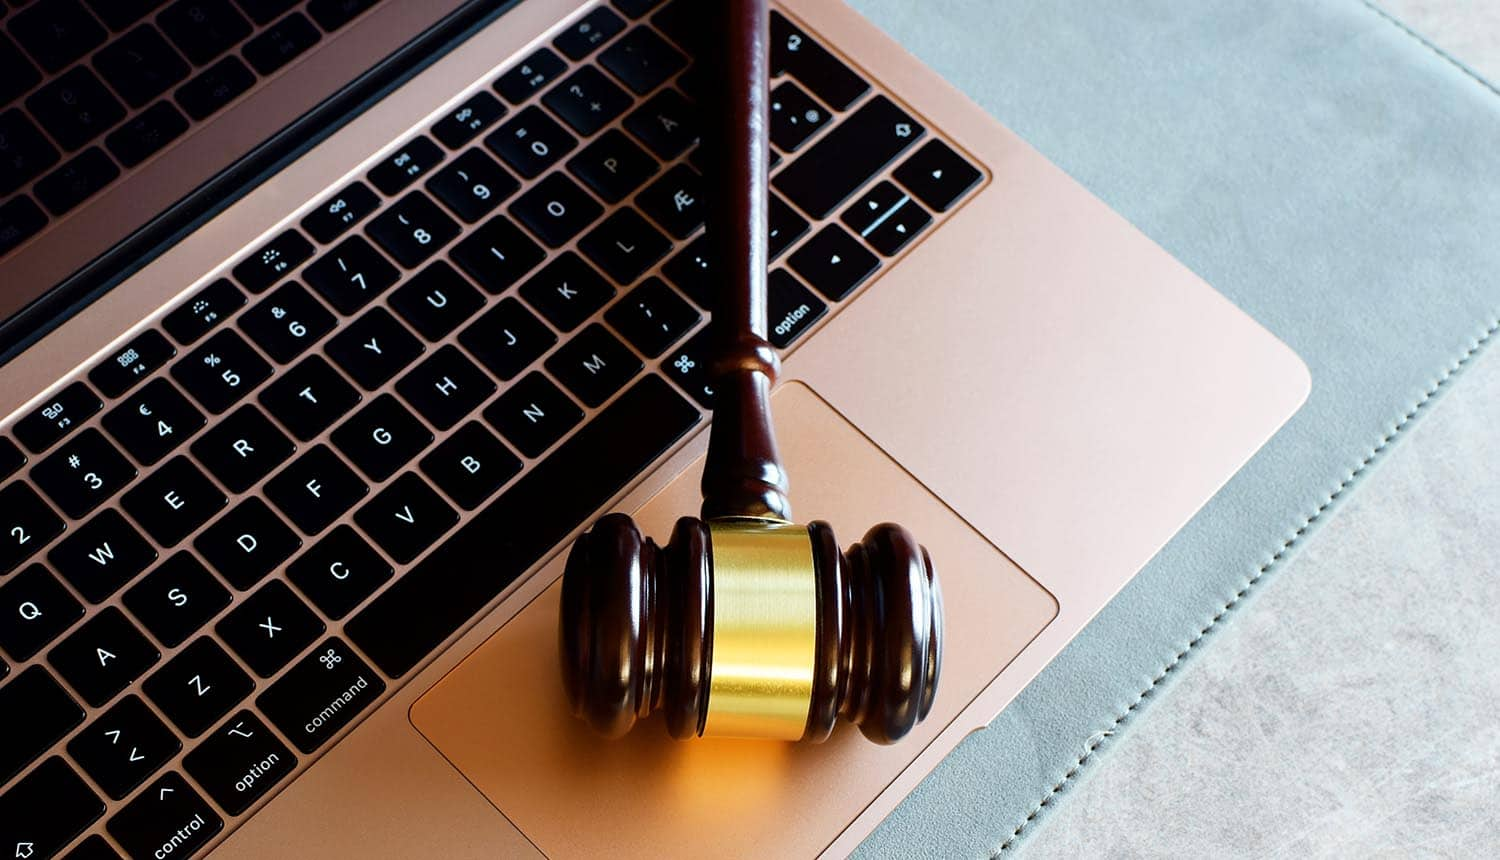 Gavel on laptop showing the need to have digital regulation to stay compliant with consumer privacy regulations